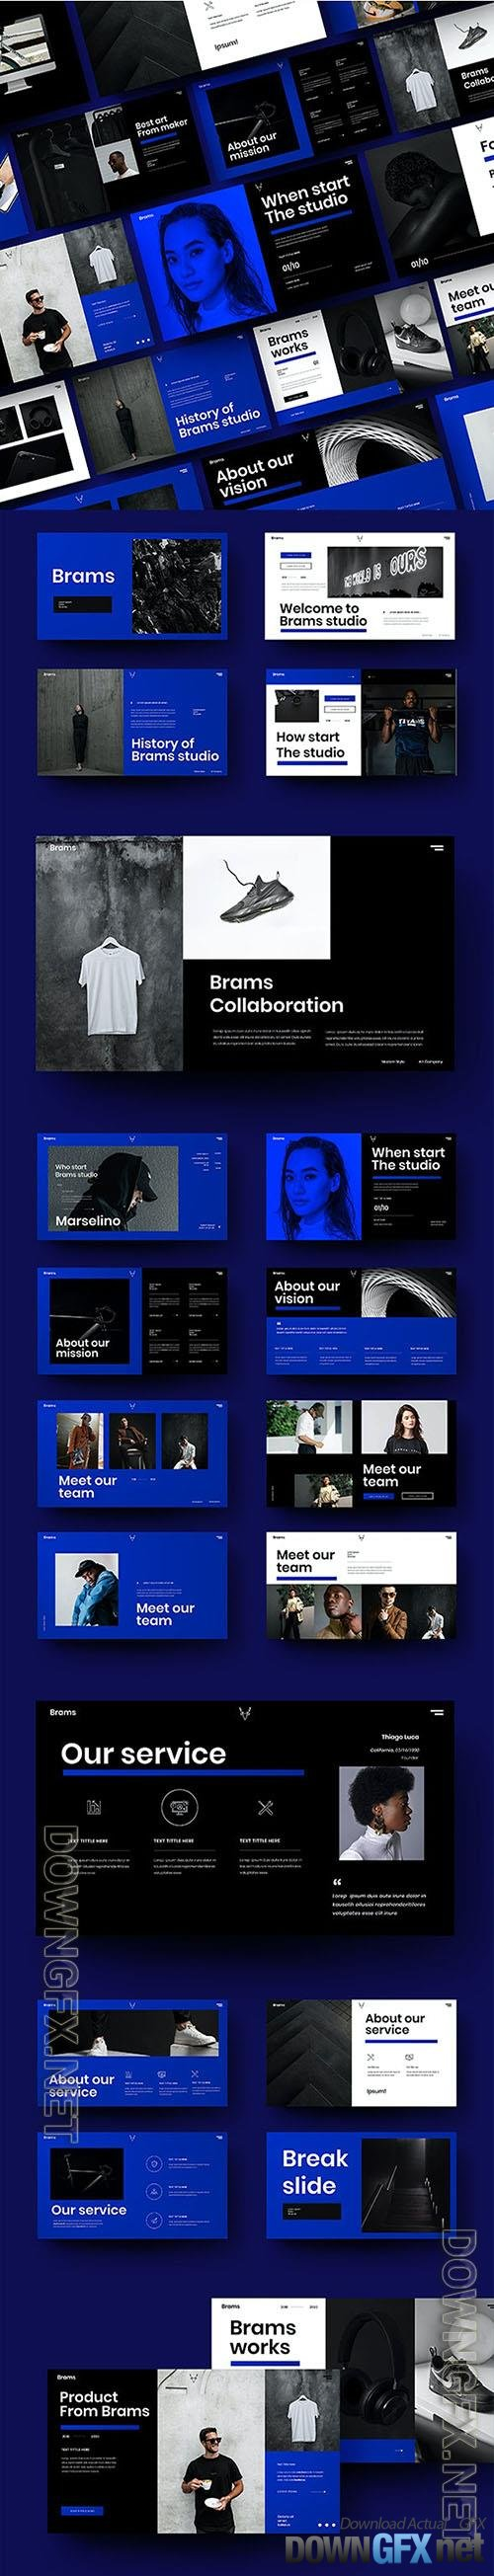 Brams - Business Powerpoint, Keynote and Google Slides Template